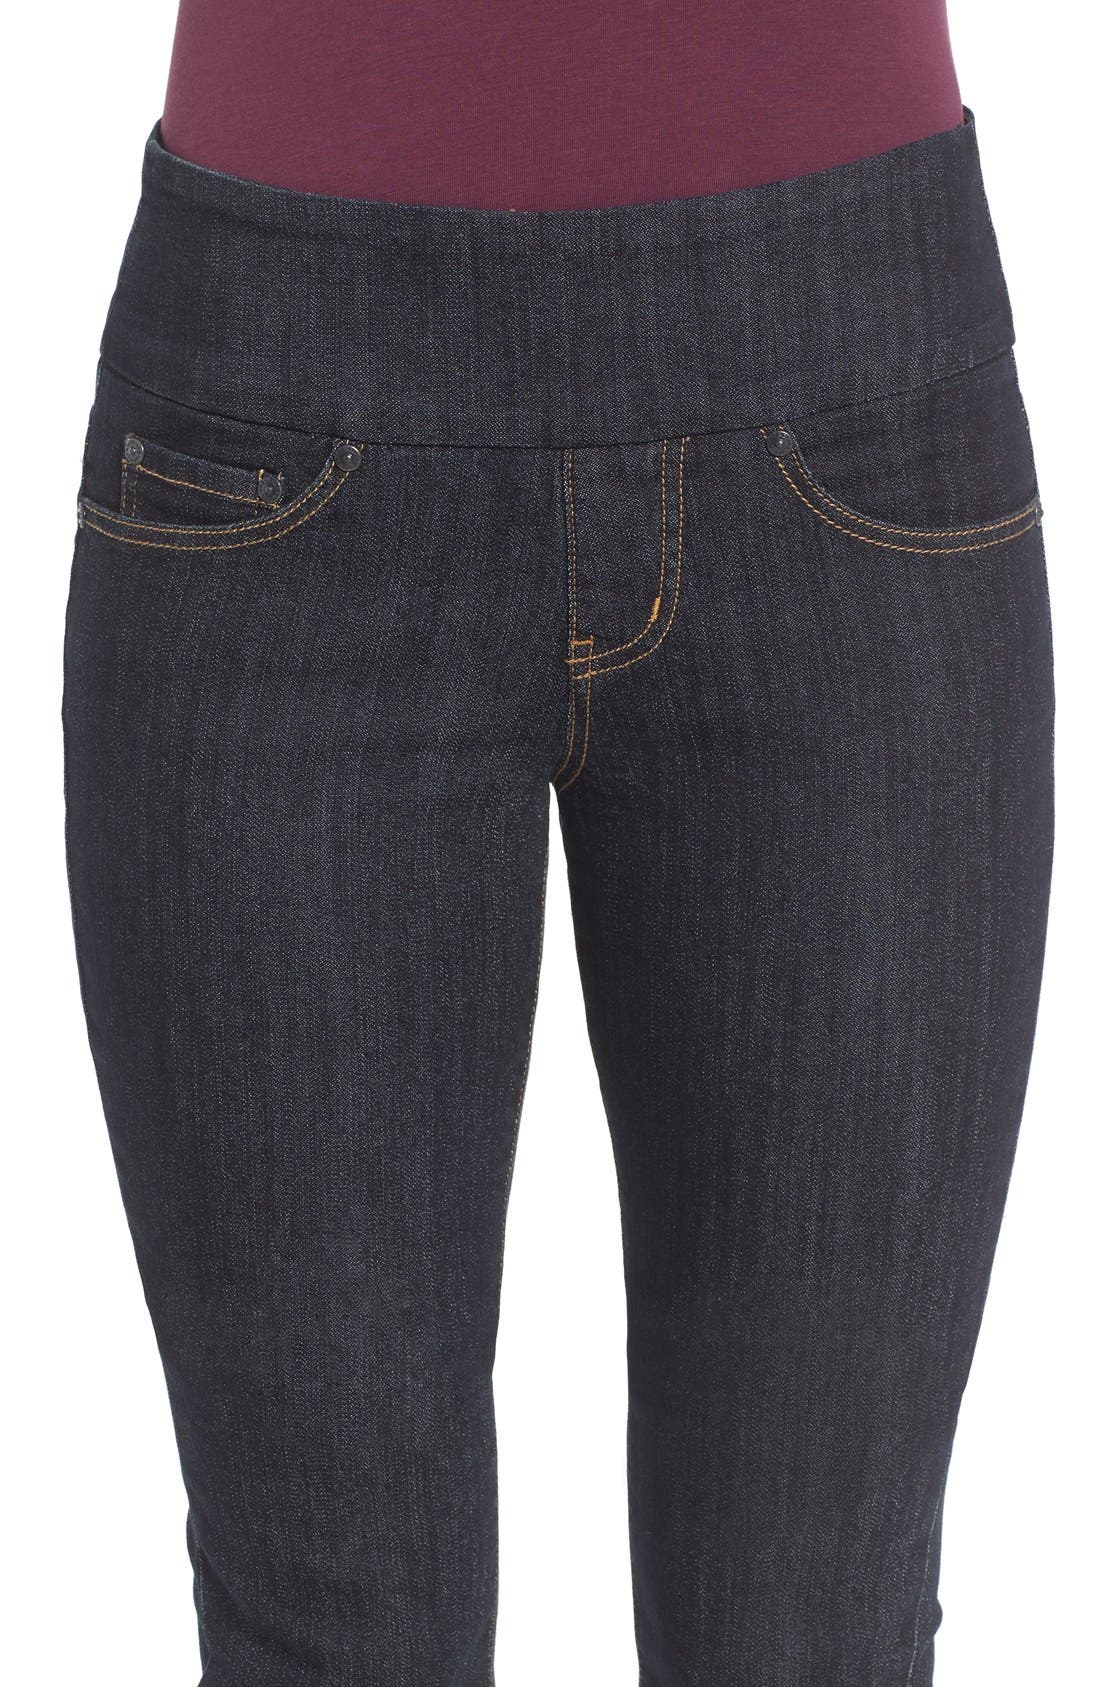 Alternate Image 4  - Jag Jeans 'Peri' Pull-On Stretch Straight Leg Jeans (Late Night) (Regular & Petite) (Online Only)